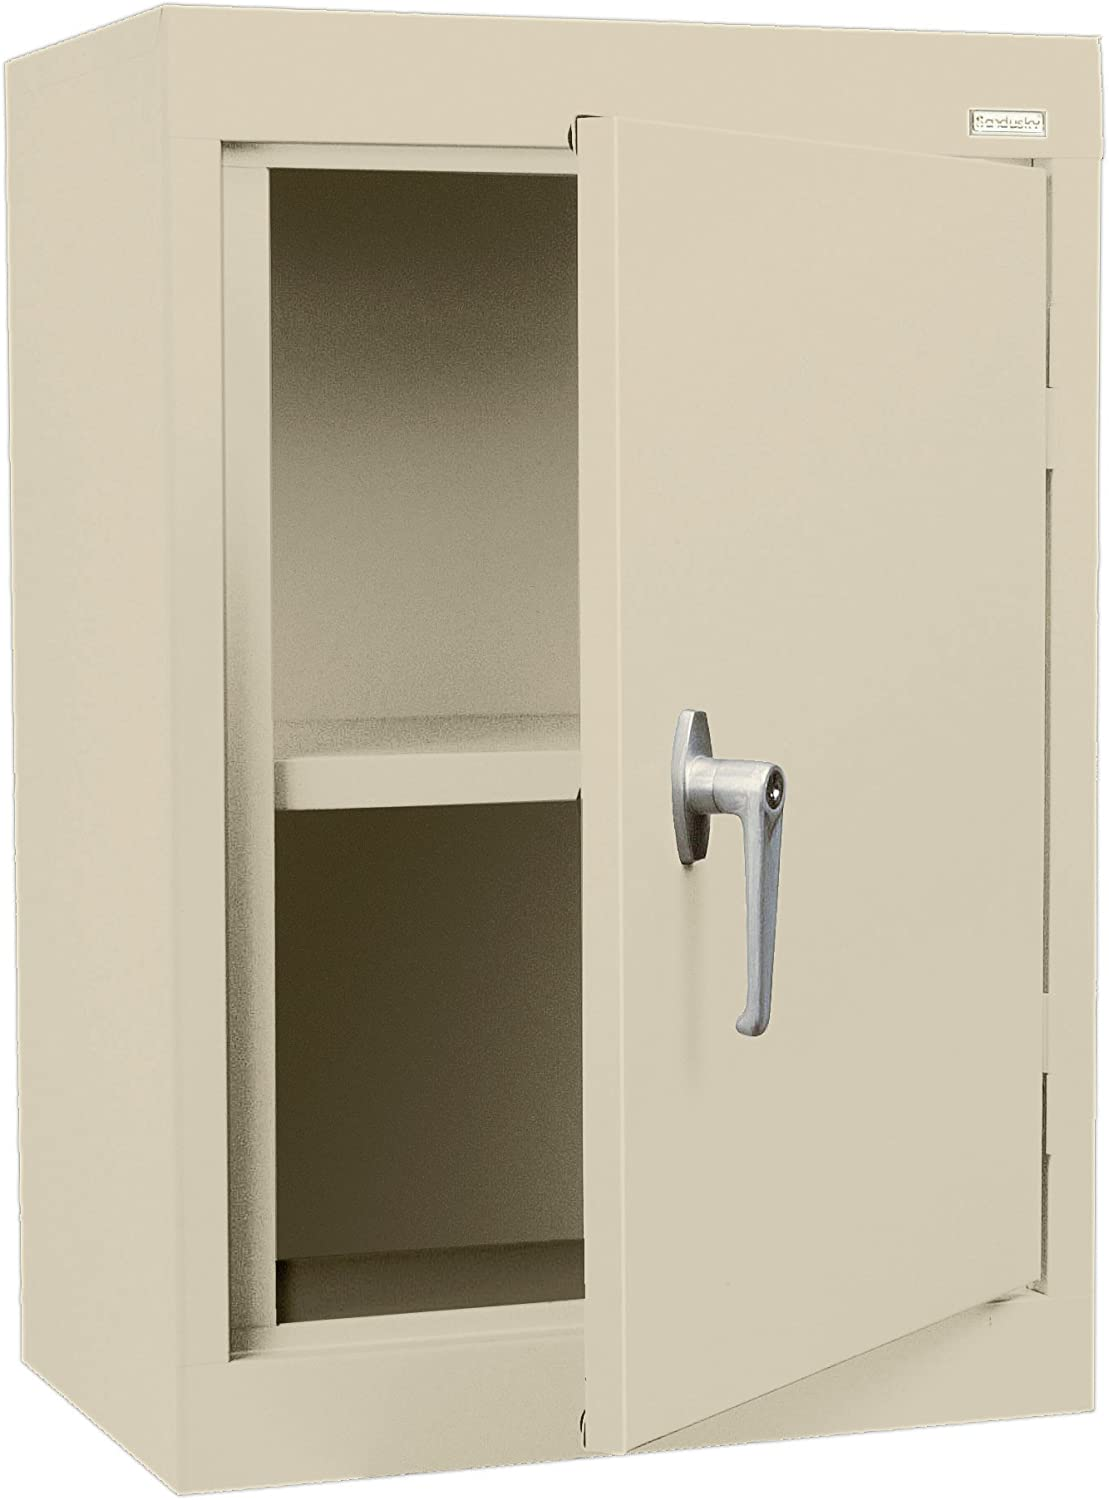 12 inch deep cabinet